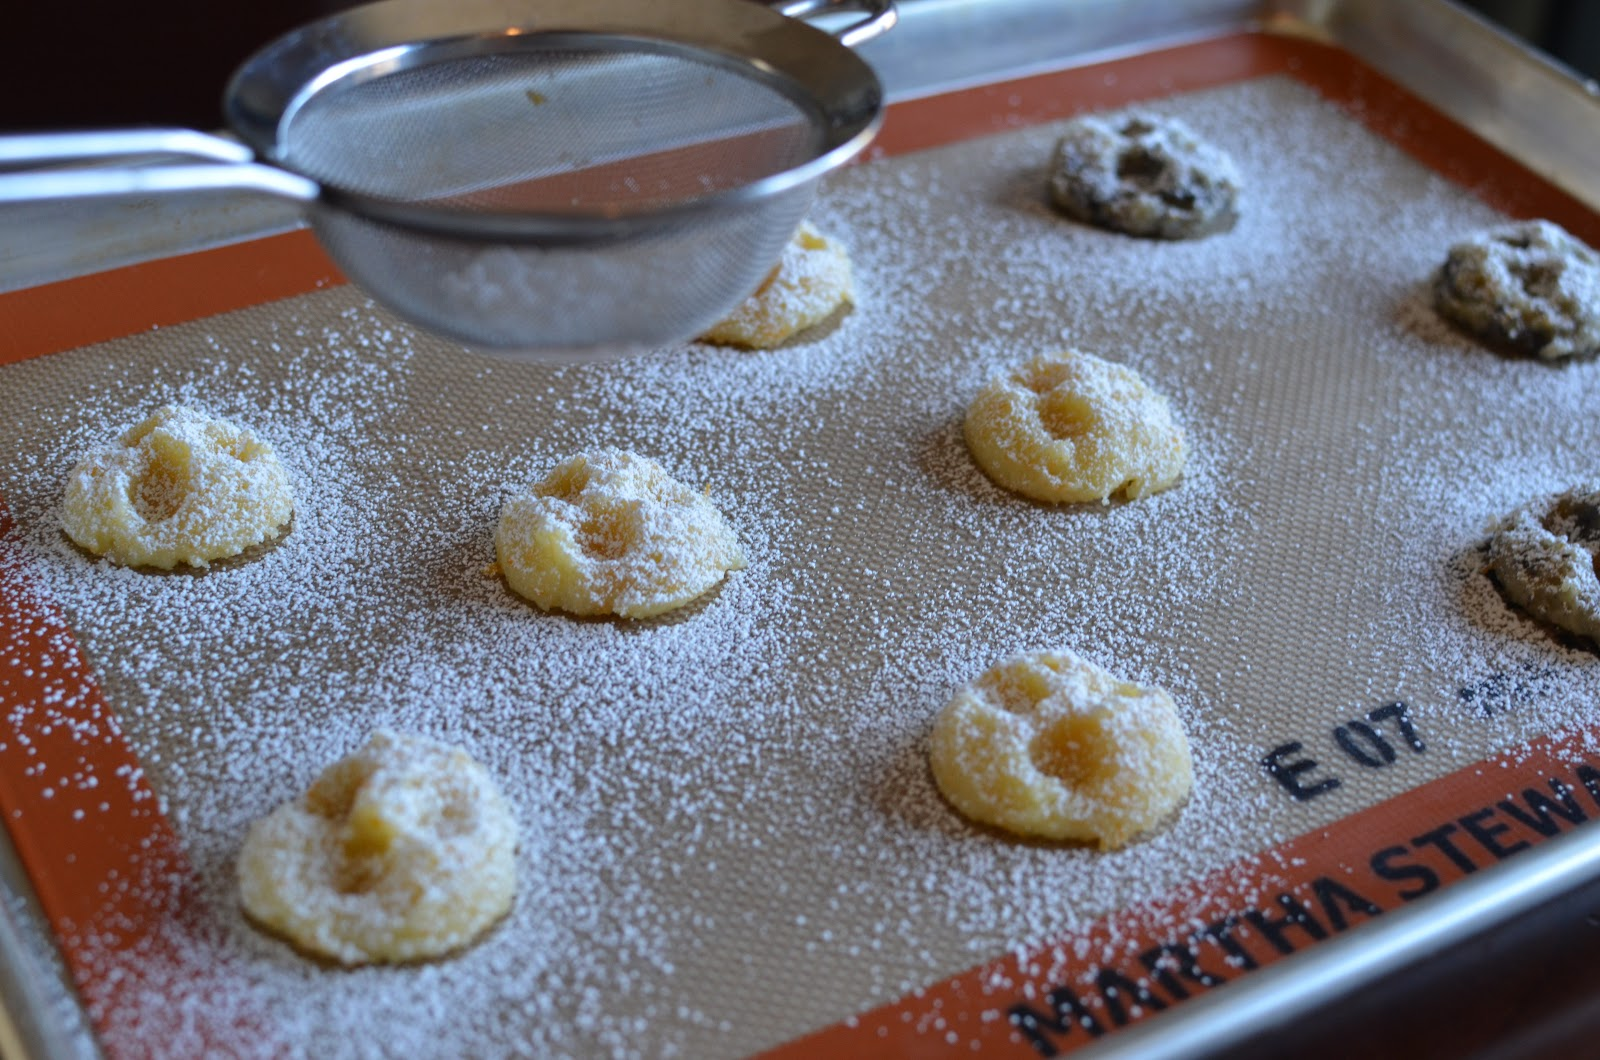 and the cookies look great after baking. The confectioners' sugar ...